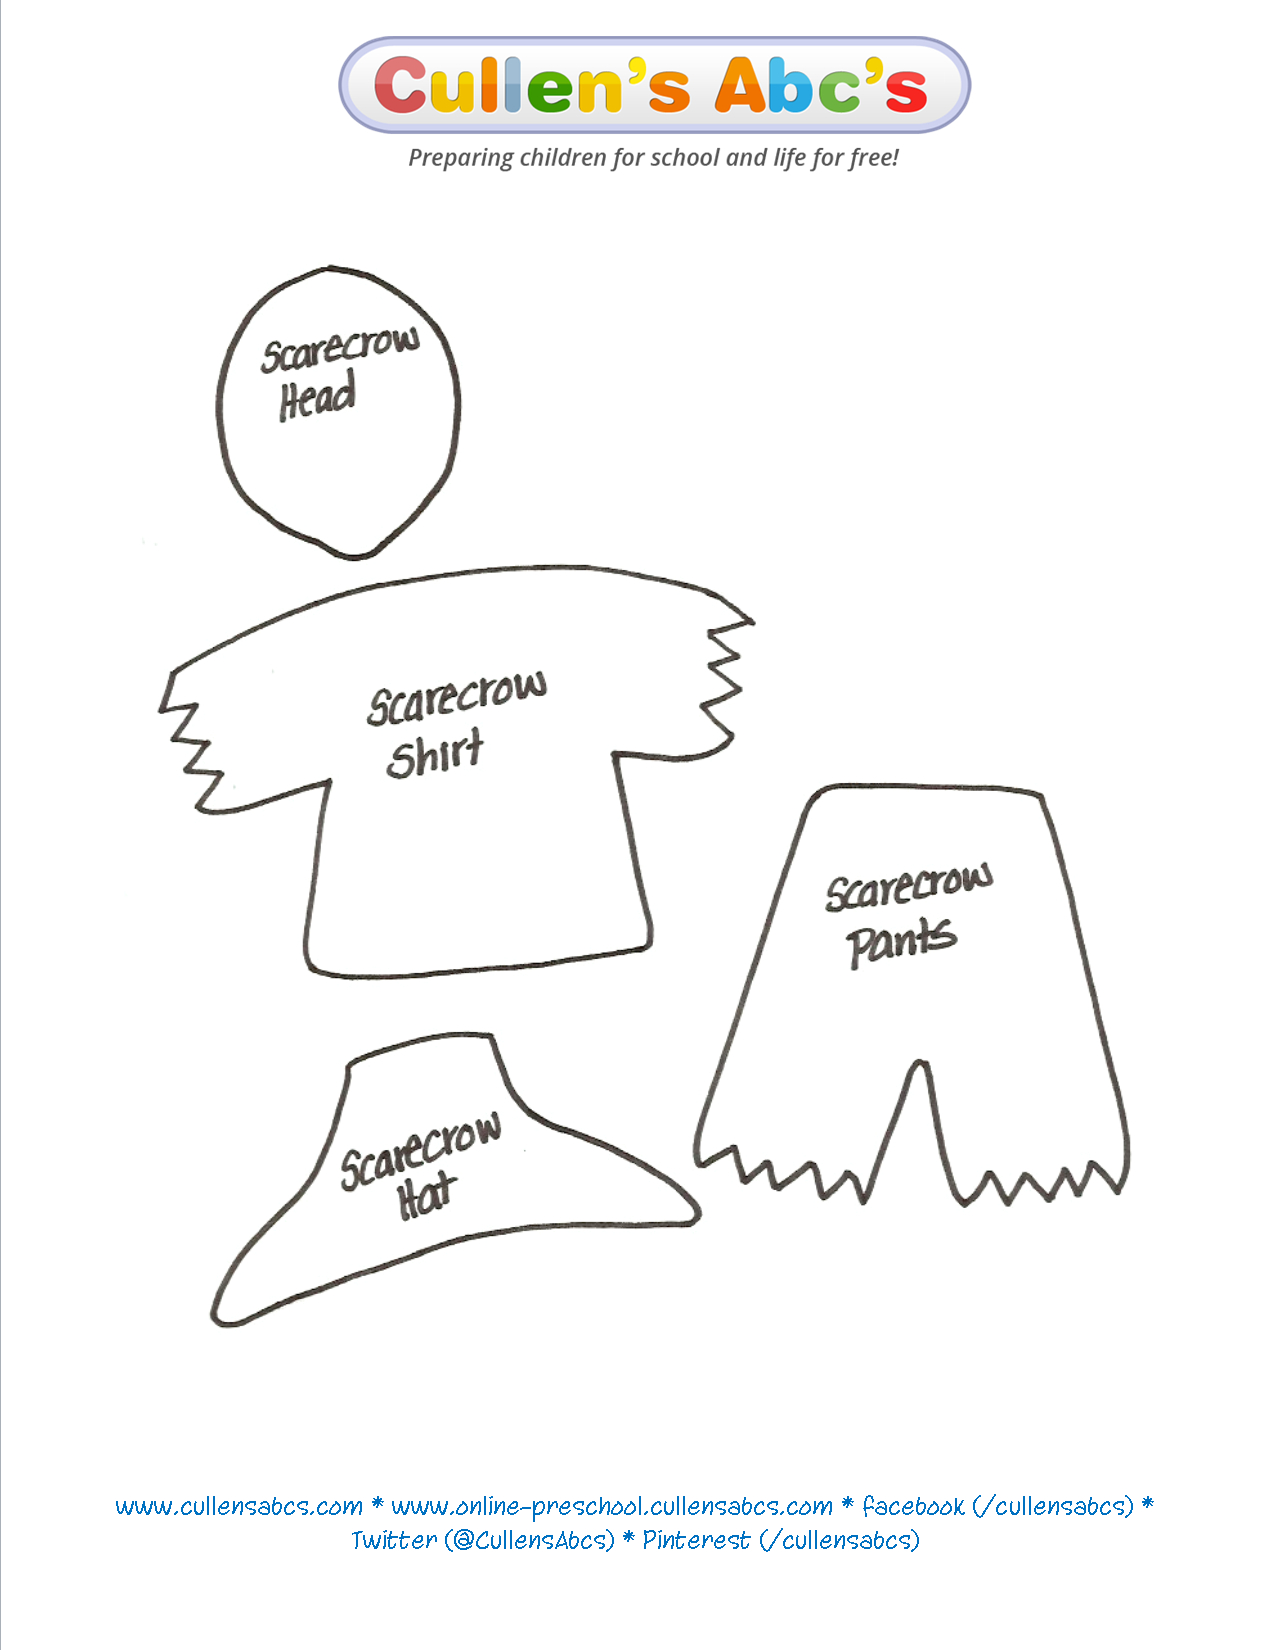 Use This Scarecrow Pattern To Print Out And Cut Out. I Would Cut Out - Free Scarecrow Template Printable